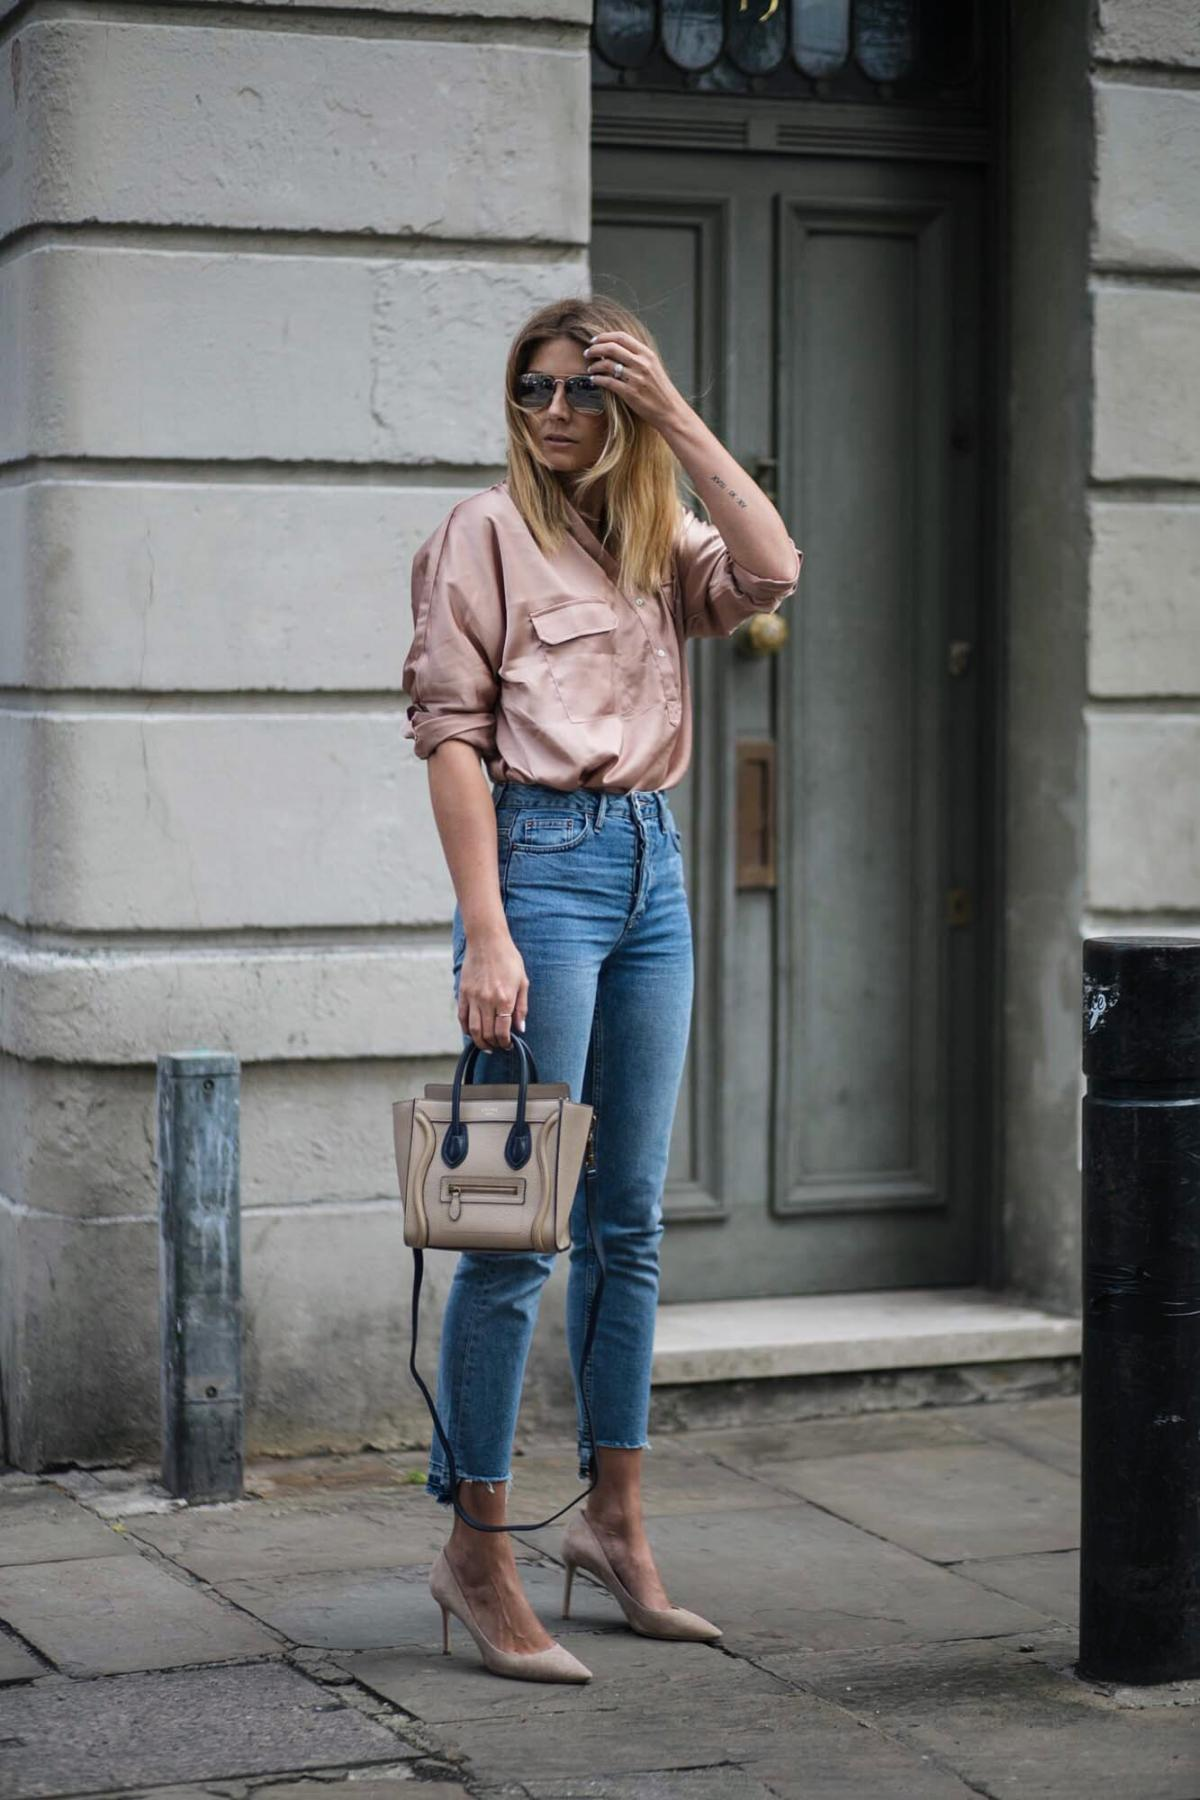 Satin shirt, straight leg stepped hem jeans, celine nano bag, jimmy choo romy court shoes beige suede, date night outfit